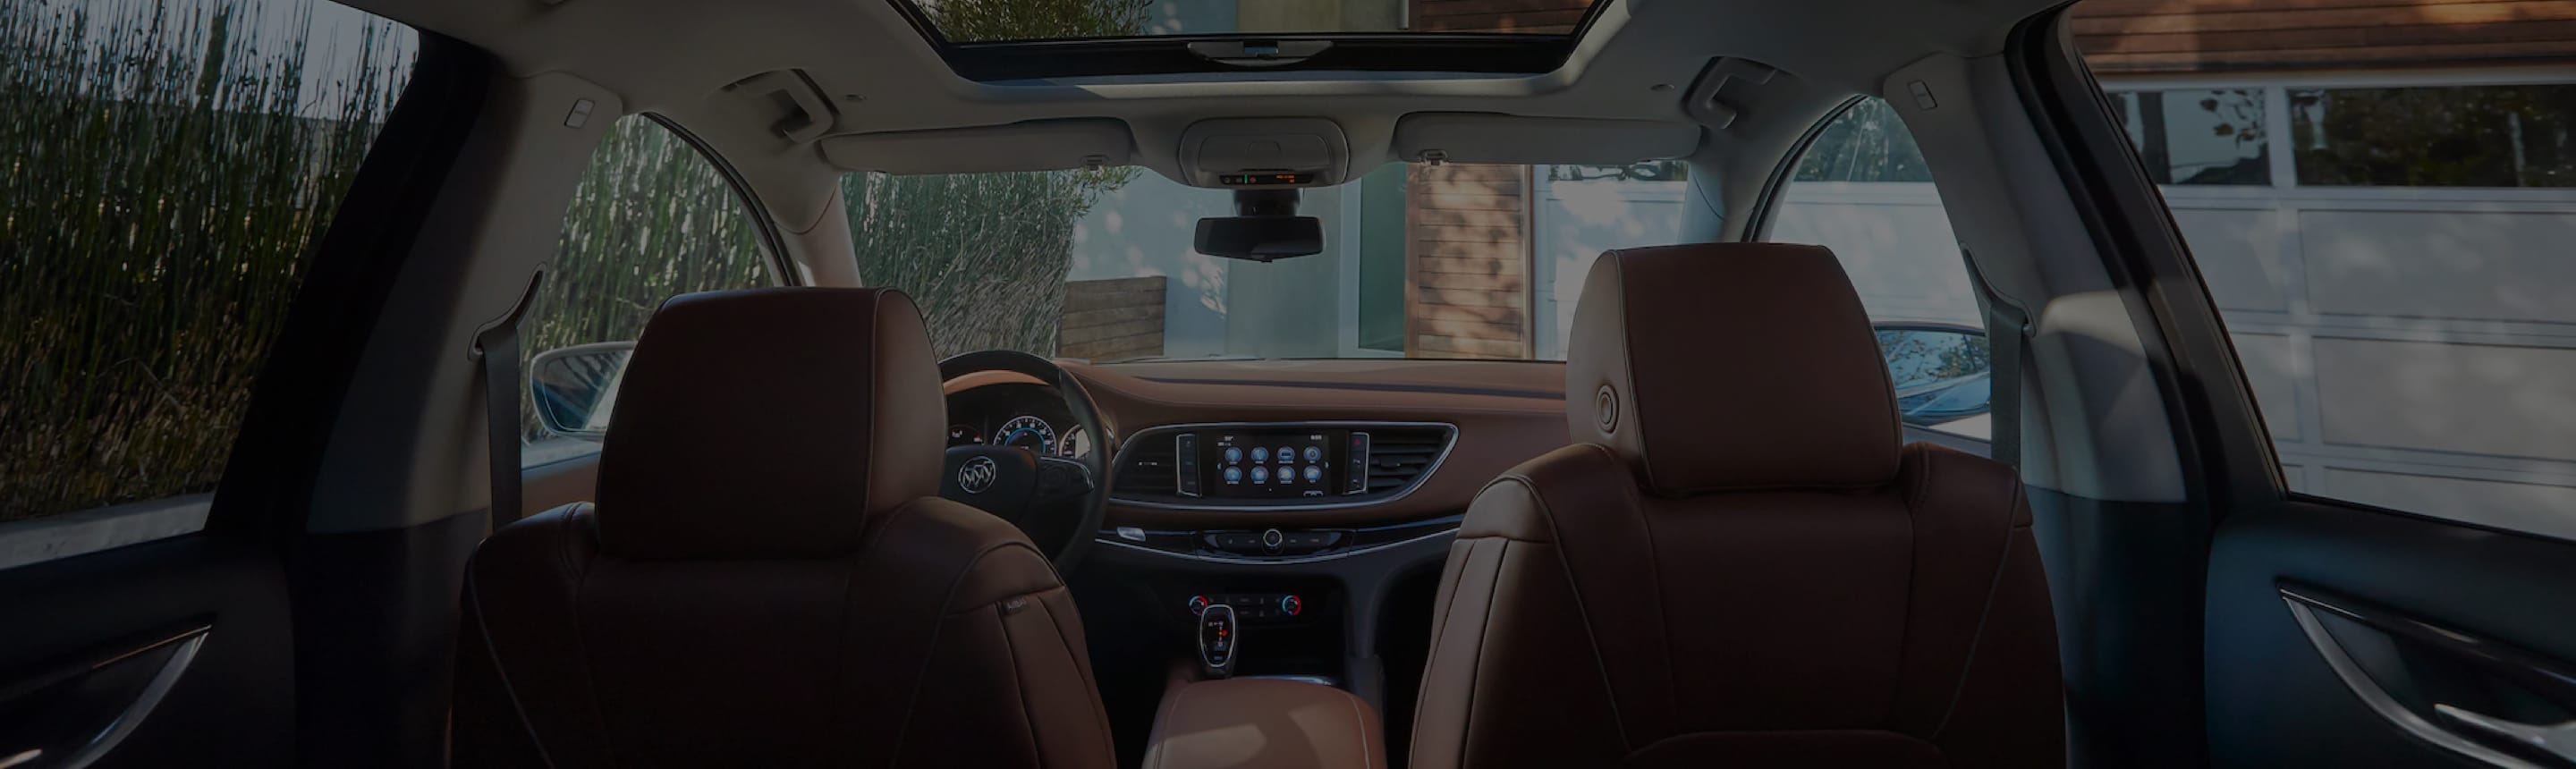 A front interior view of a Buick vehicle from the backseat